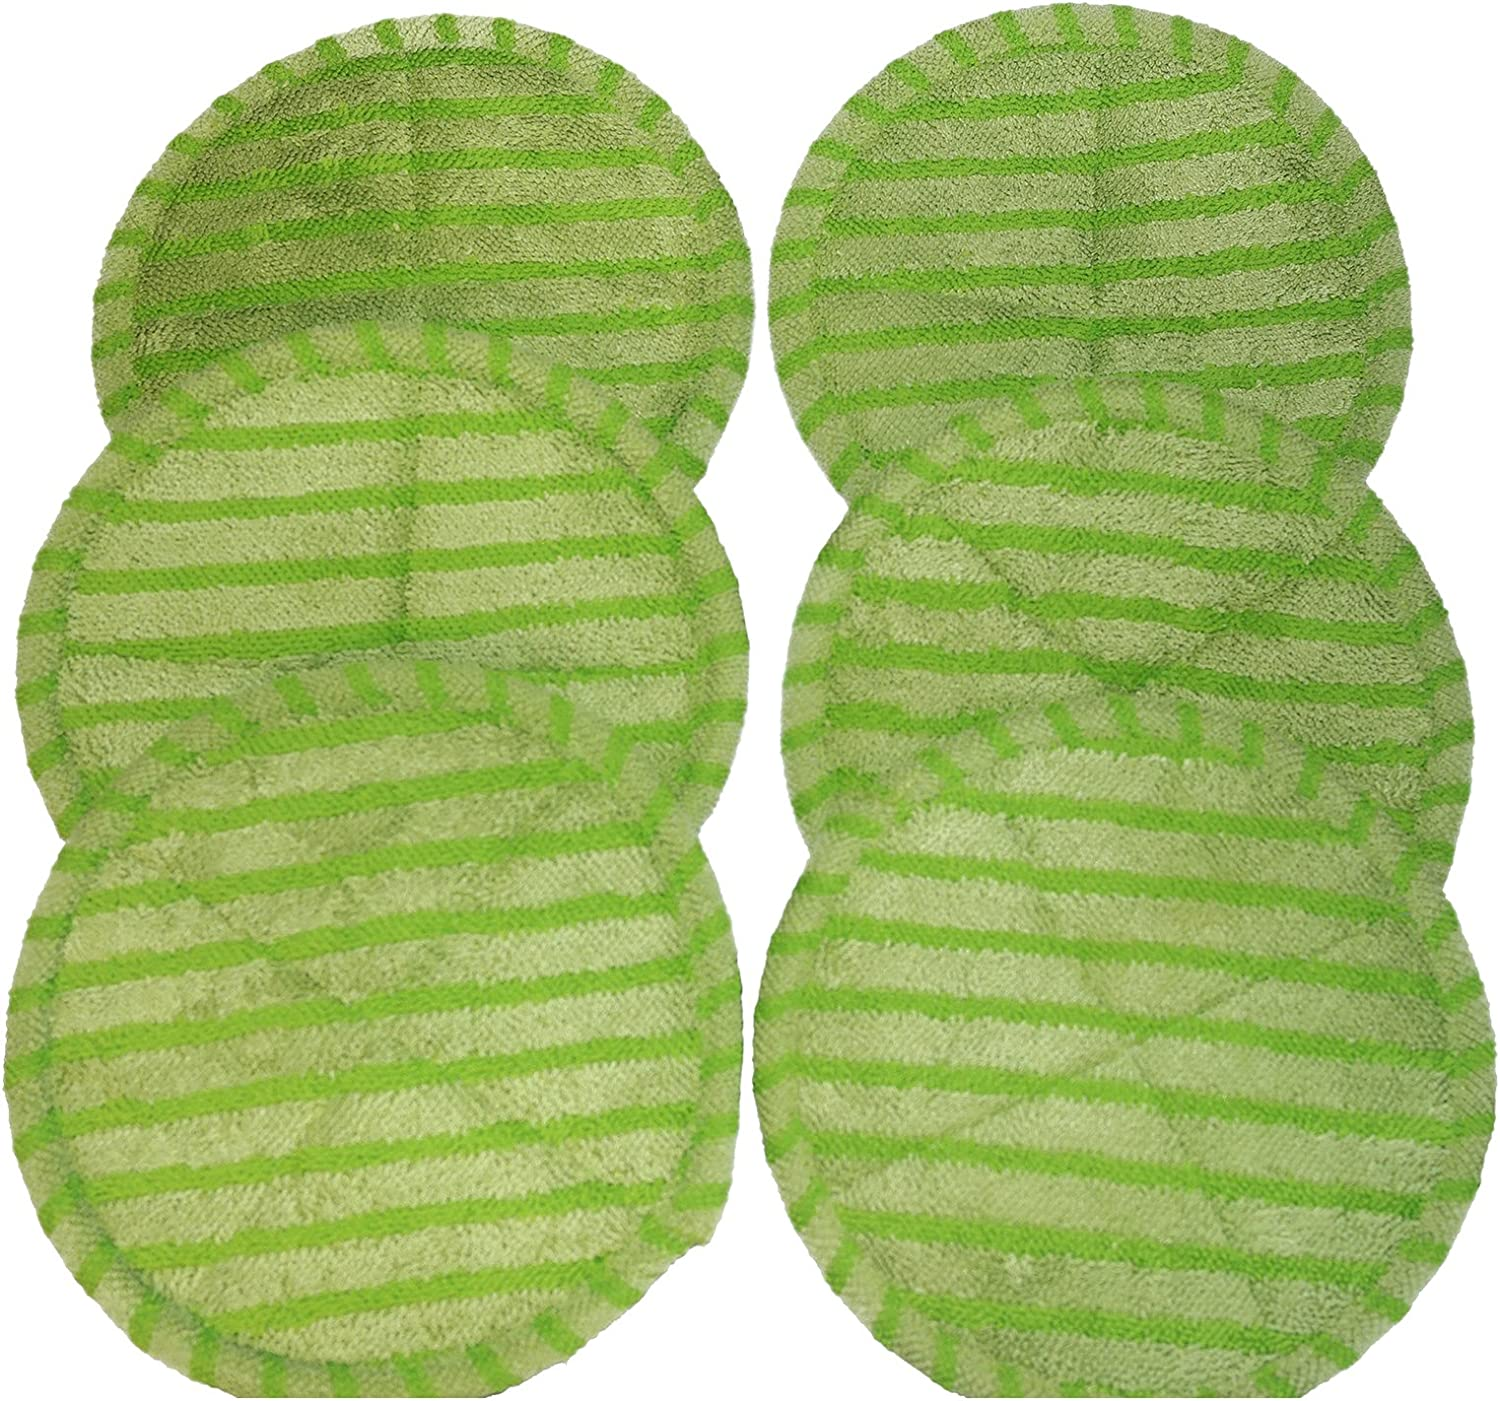 Elicto Electronic Dual Spin Mop and Polisher Replacement Mop Heads (3 Sets (Green))